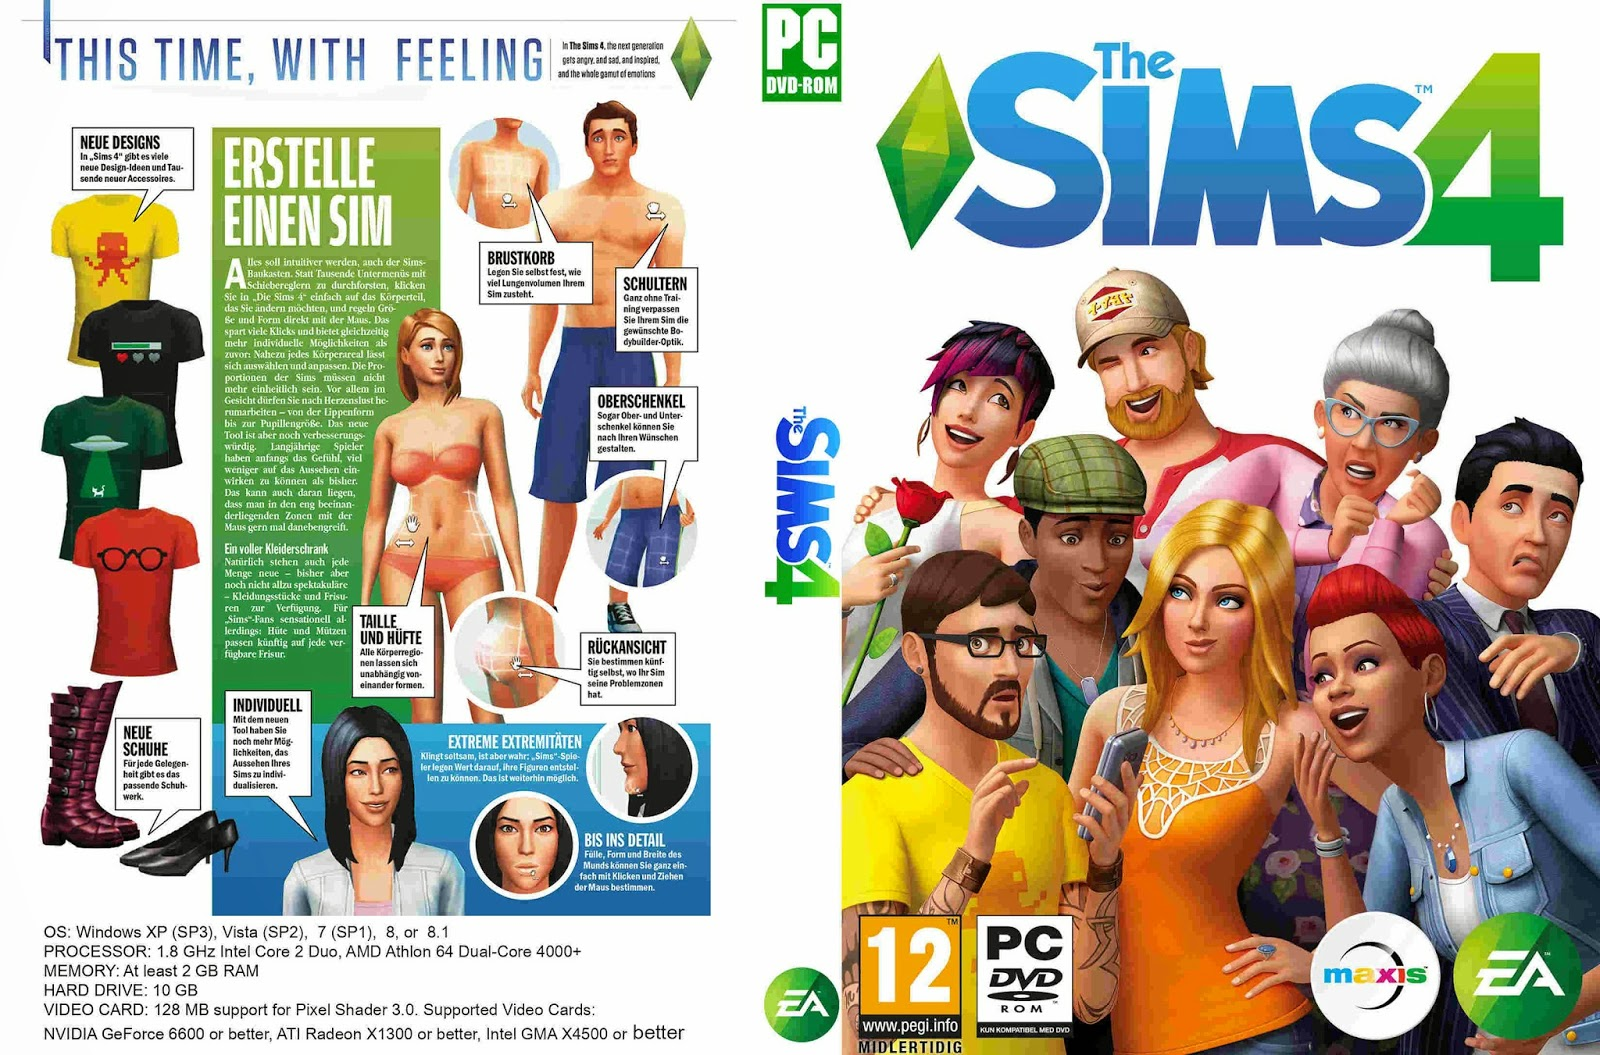 Sims3 ps3 nude add-ons sex streaming